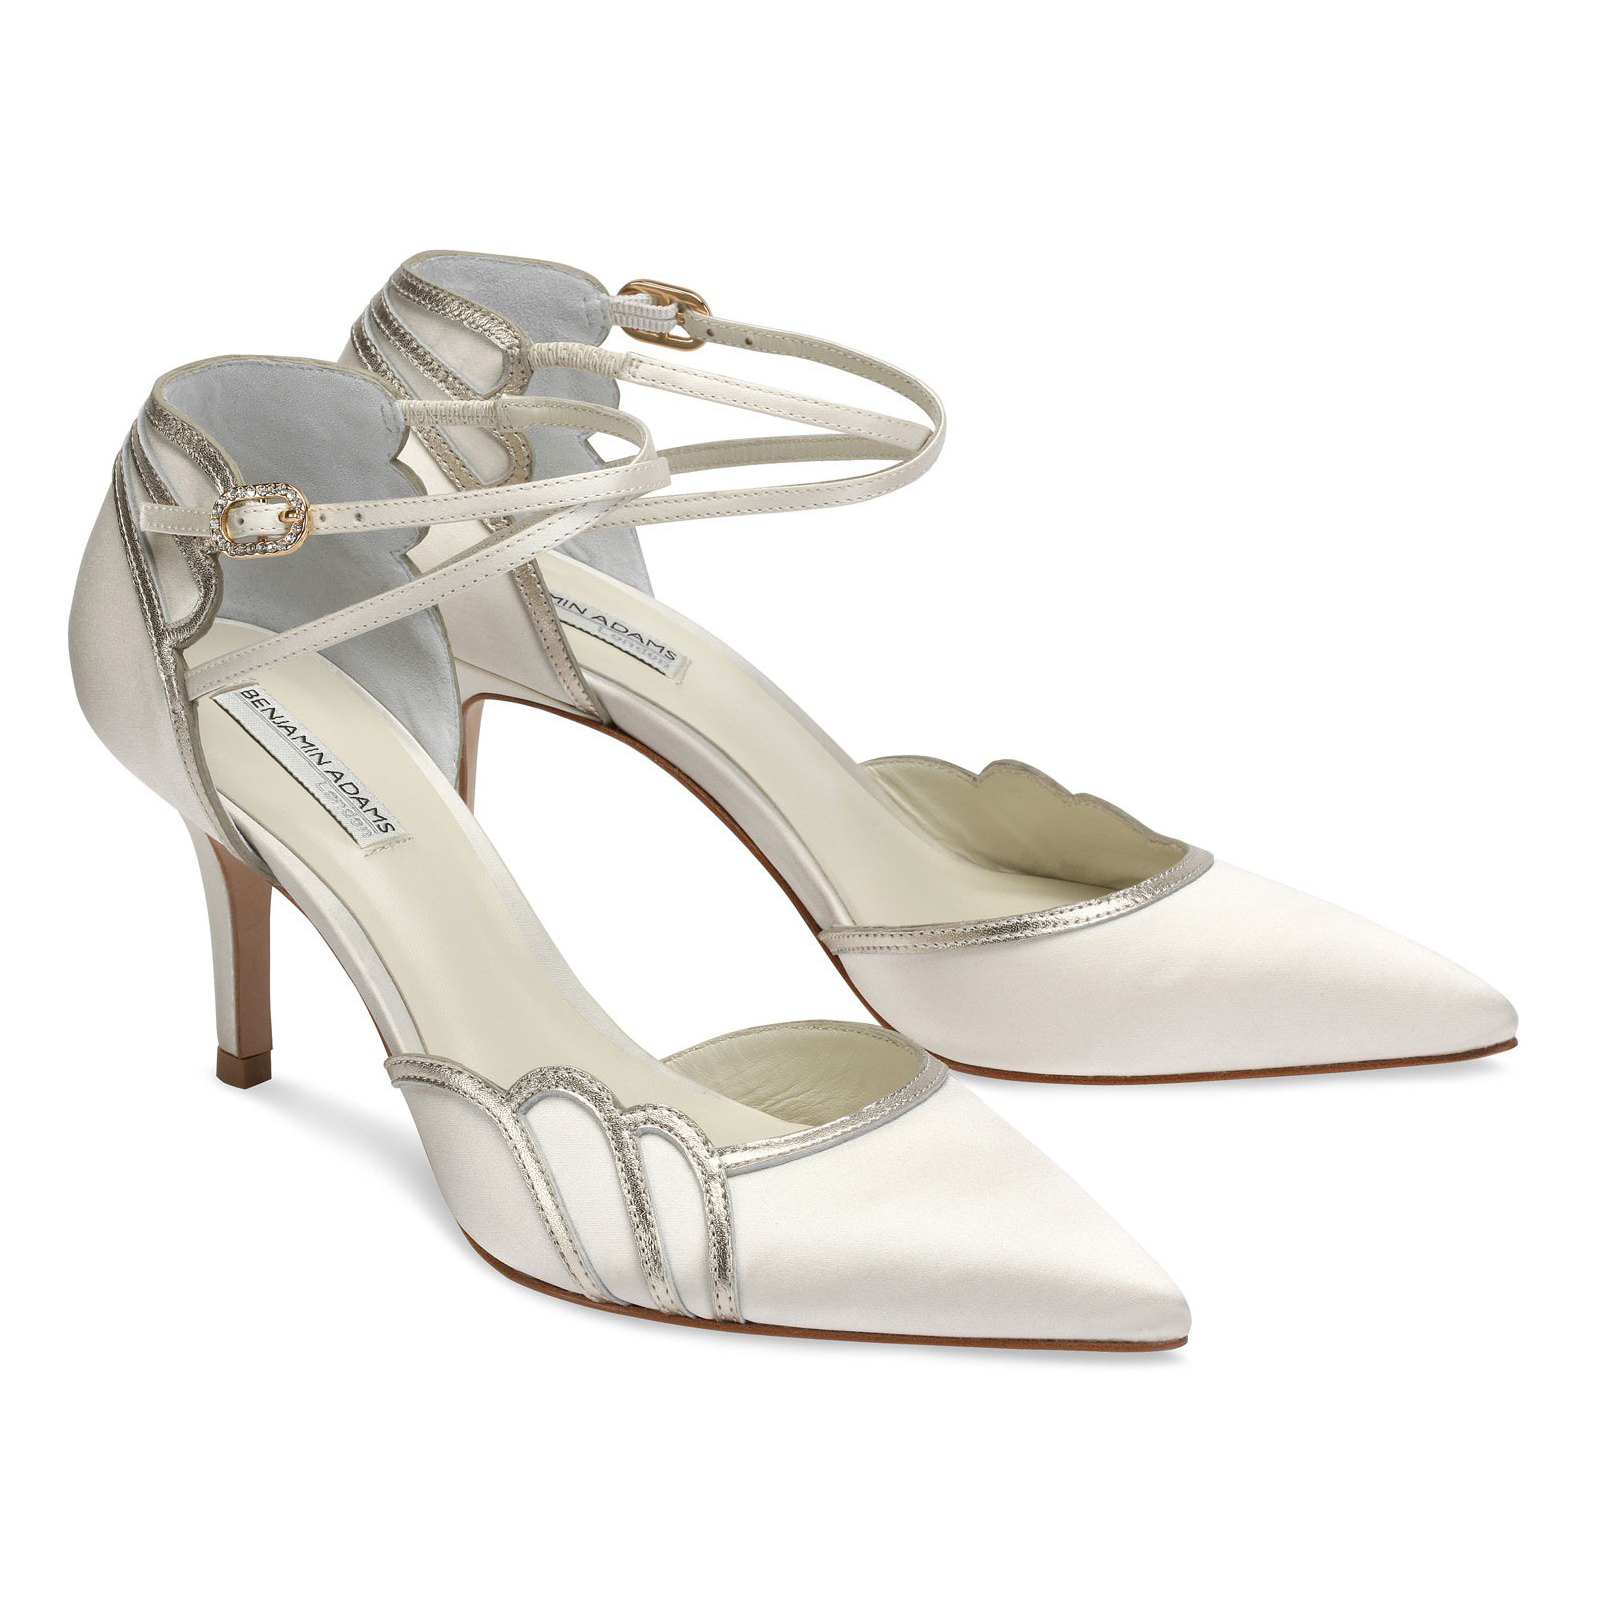 7f23453ad Comfortable Wedding High Heels: Dyeable Wedding Shoes - Dyeable Shoe ...